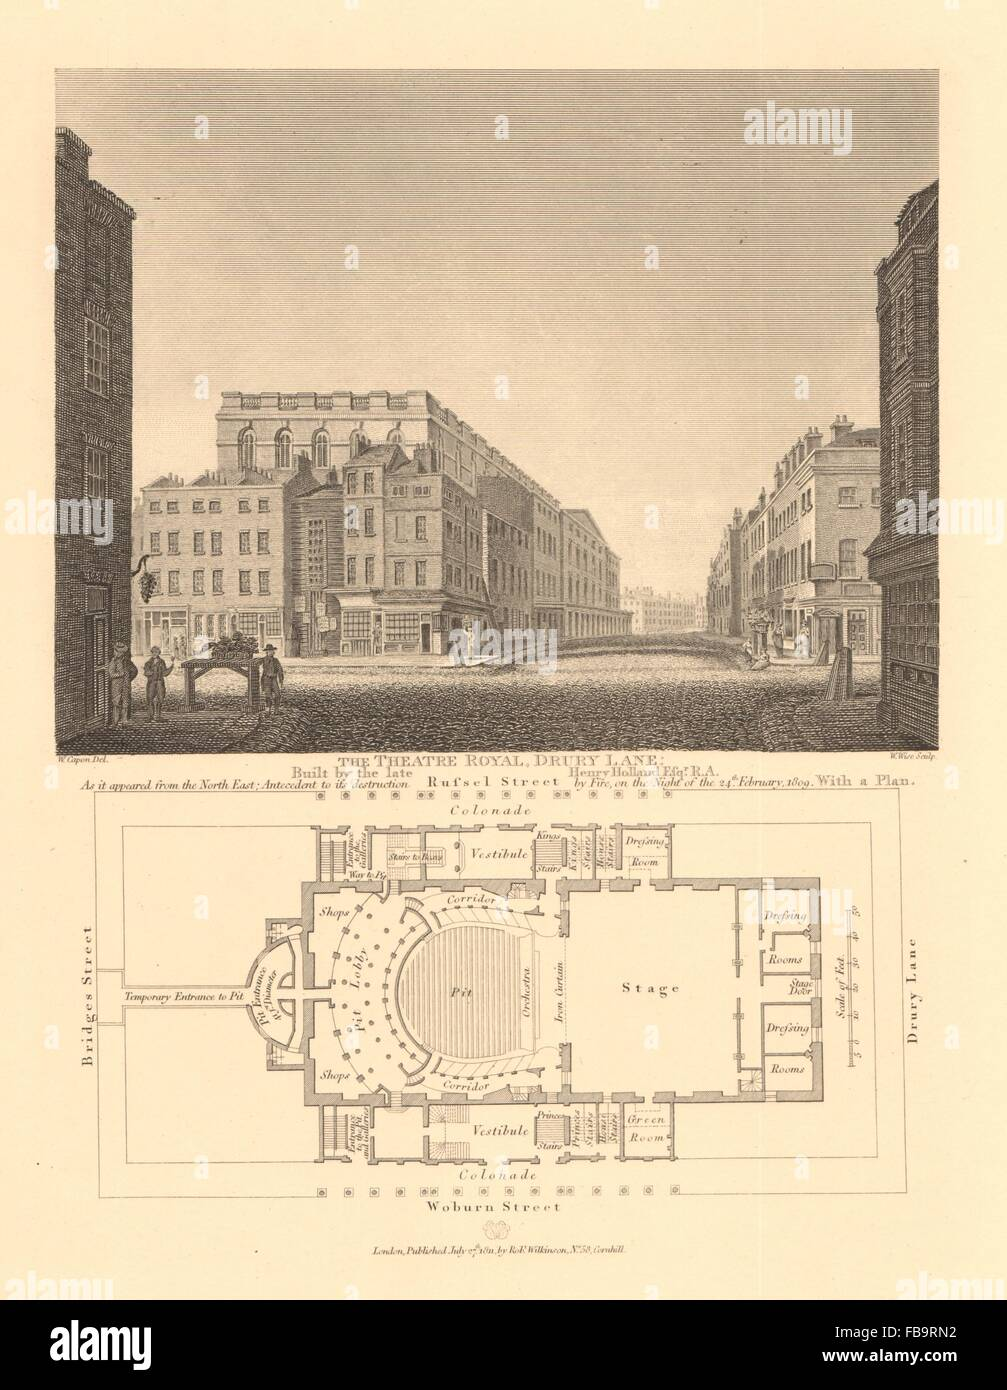 THEATRE ROYAL DRURY LANE. From NE < 1809 fire & plan. Russell Street, 1834 map - Stock Image